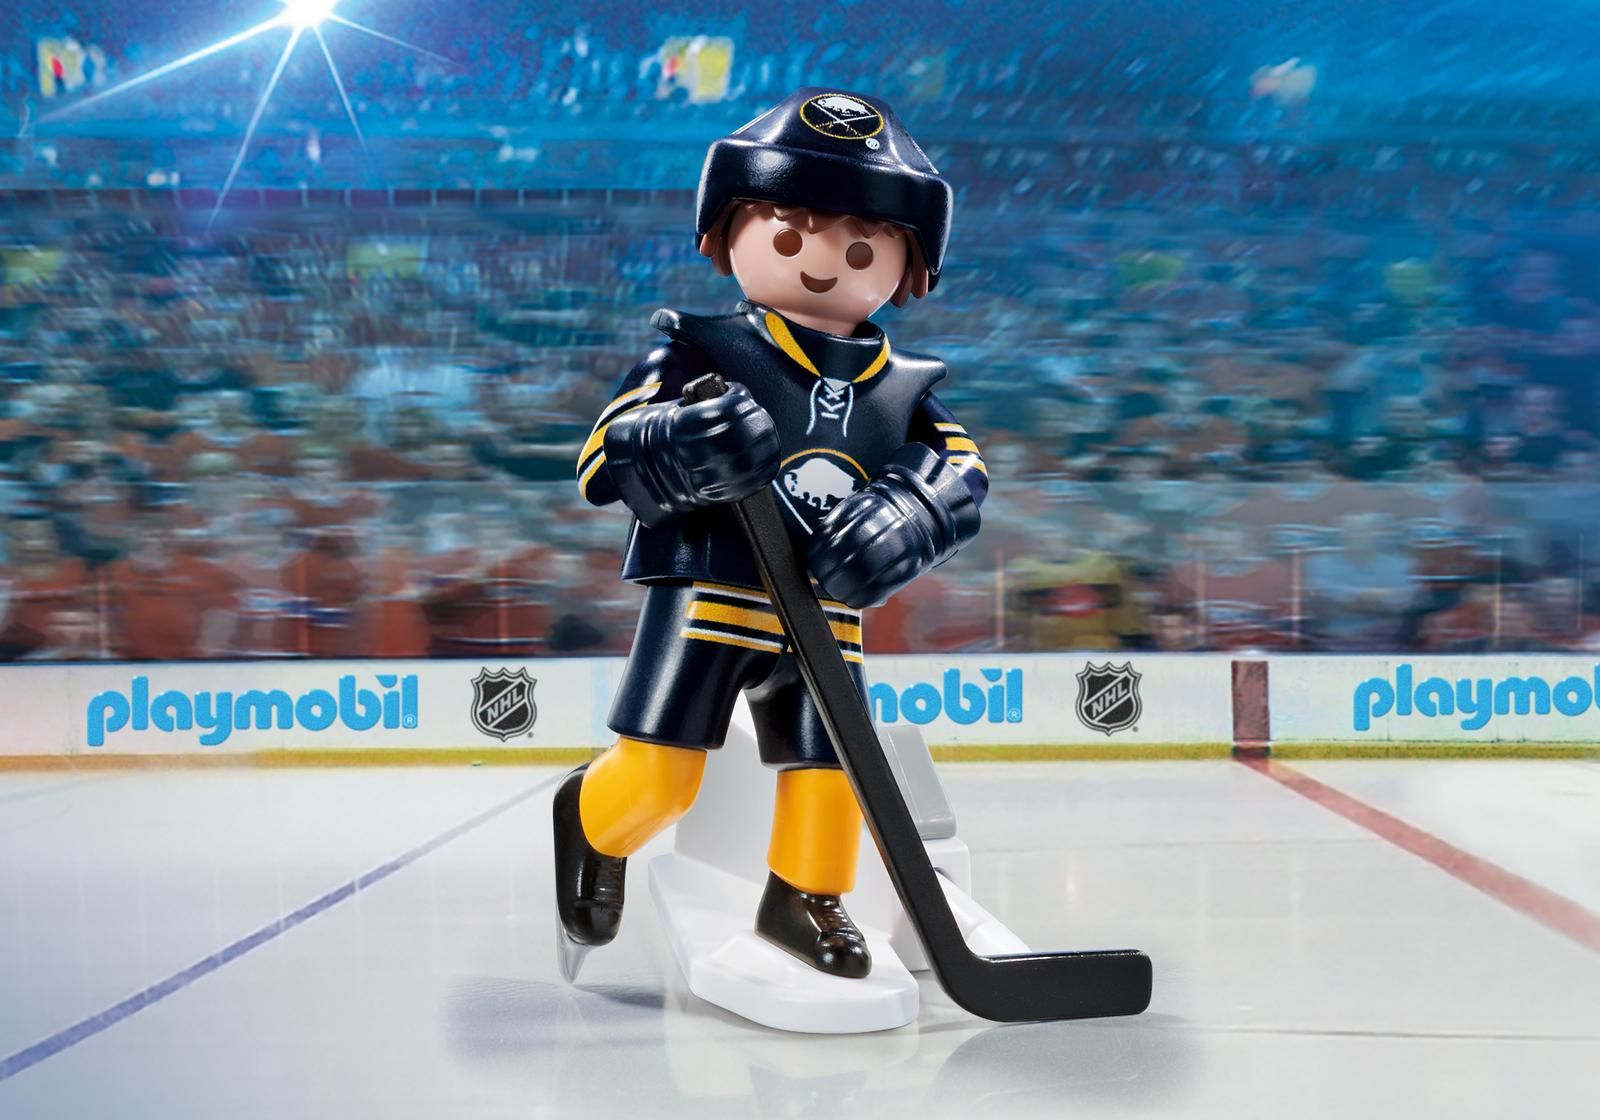 Playmobil NHL® Buffalo Sabres® Player